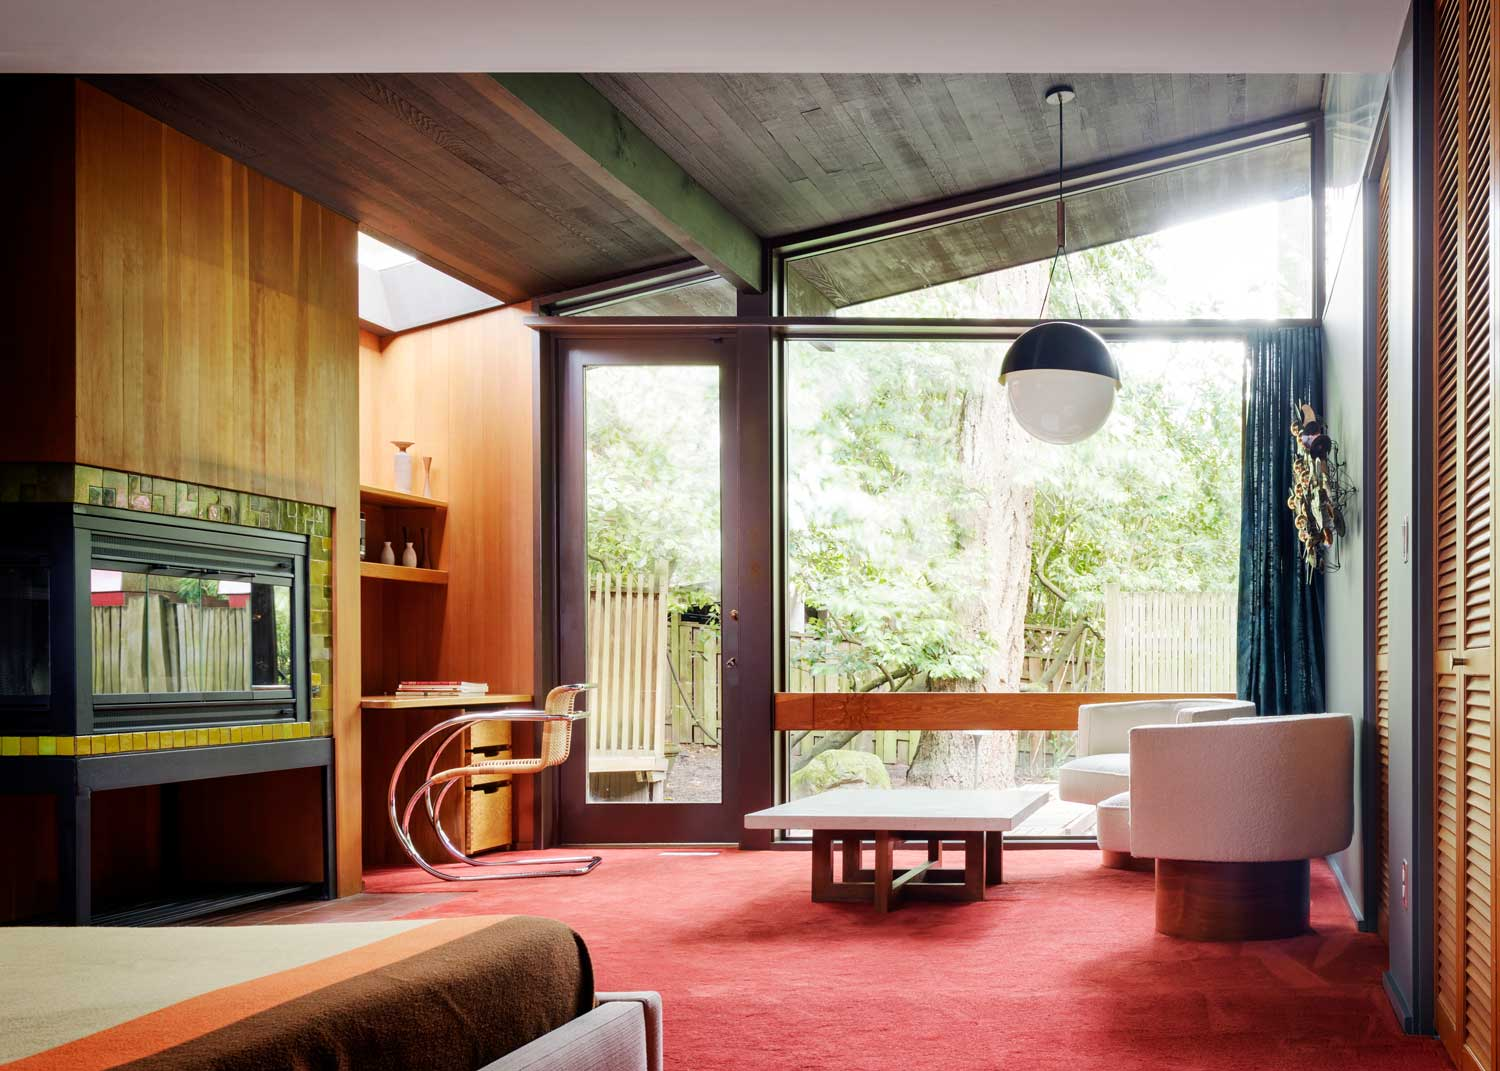 How to have a rocking 1950s home décor?